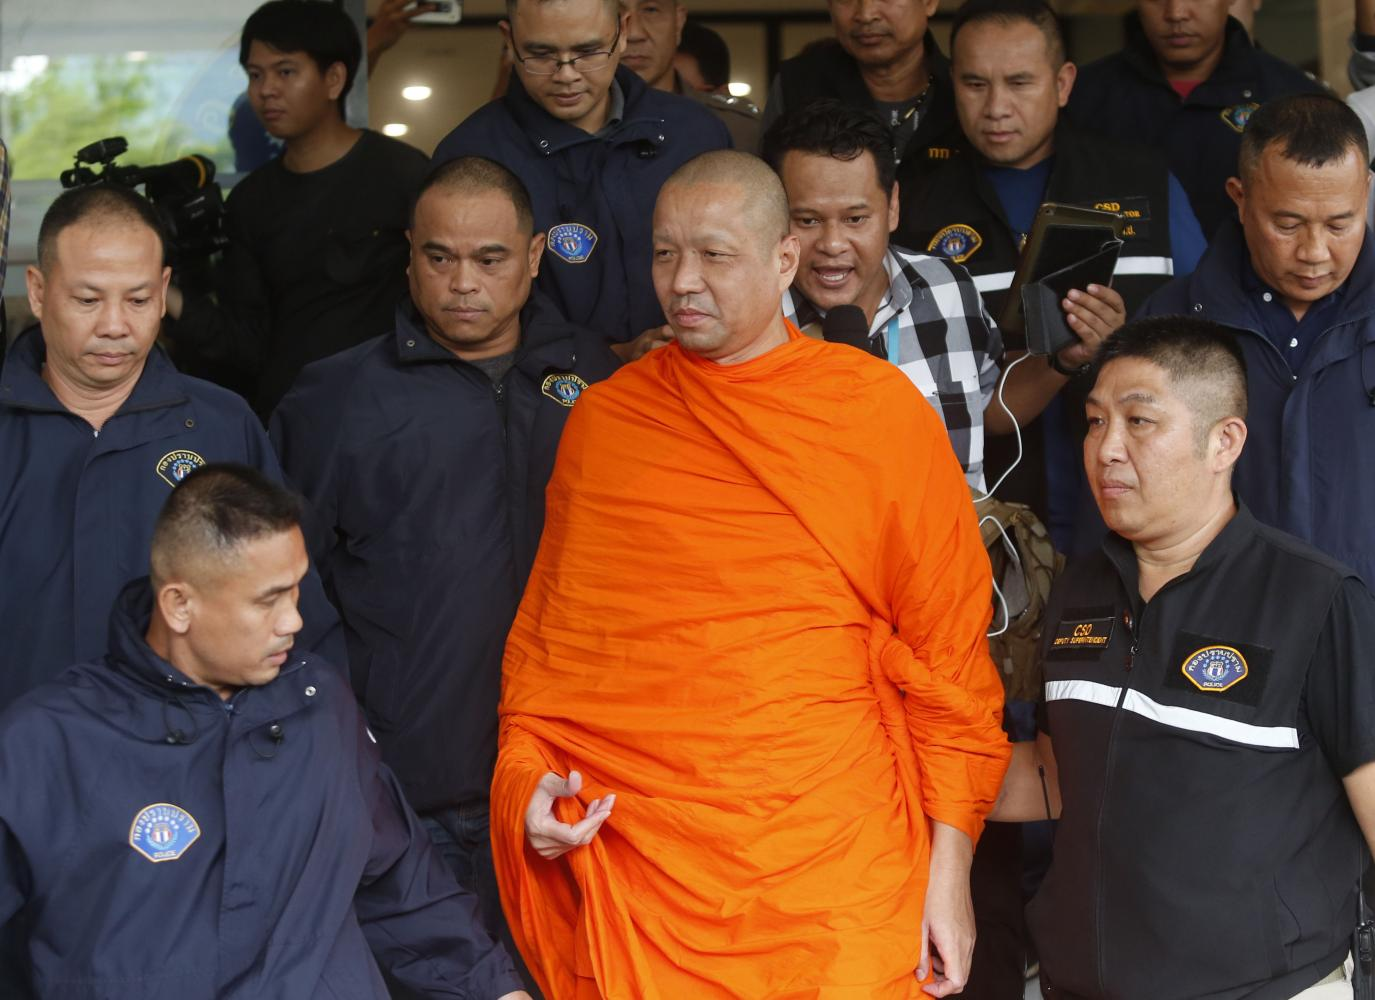 Methi Sutthikon, then assistant abbot of Wat Sa Ket, is brought to police custody in Bangkok in May 2018. (Bangkok Post file photo)